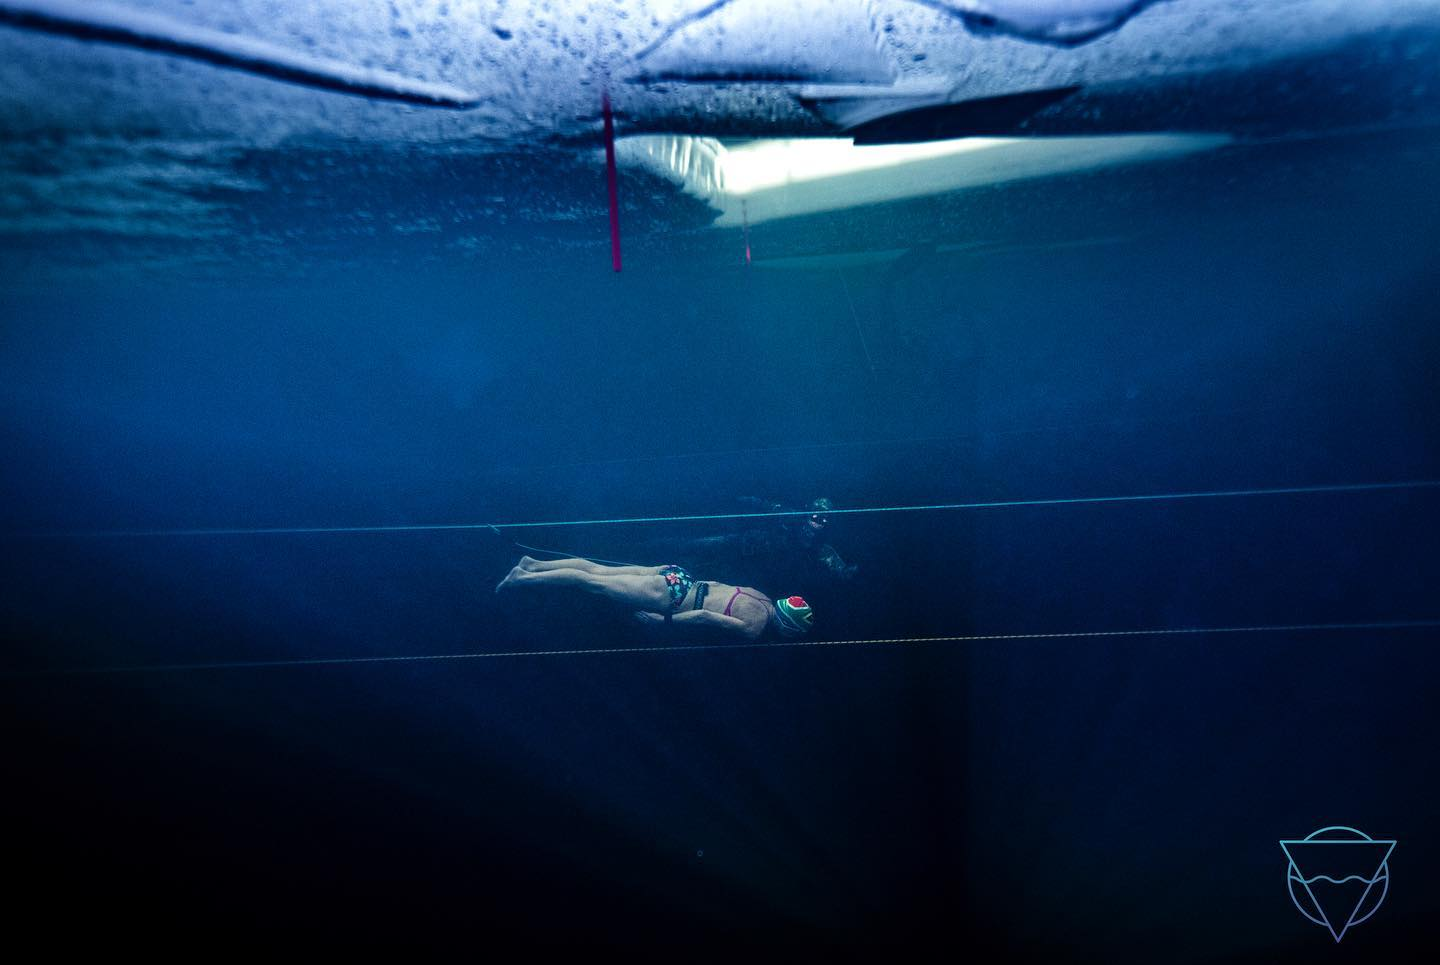 Amber Fillary Breaks Guinness World Record For Longest Swim Under Ice (Image credit: Aleksander Nordahl)